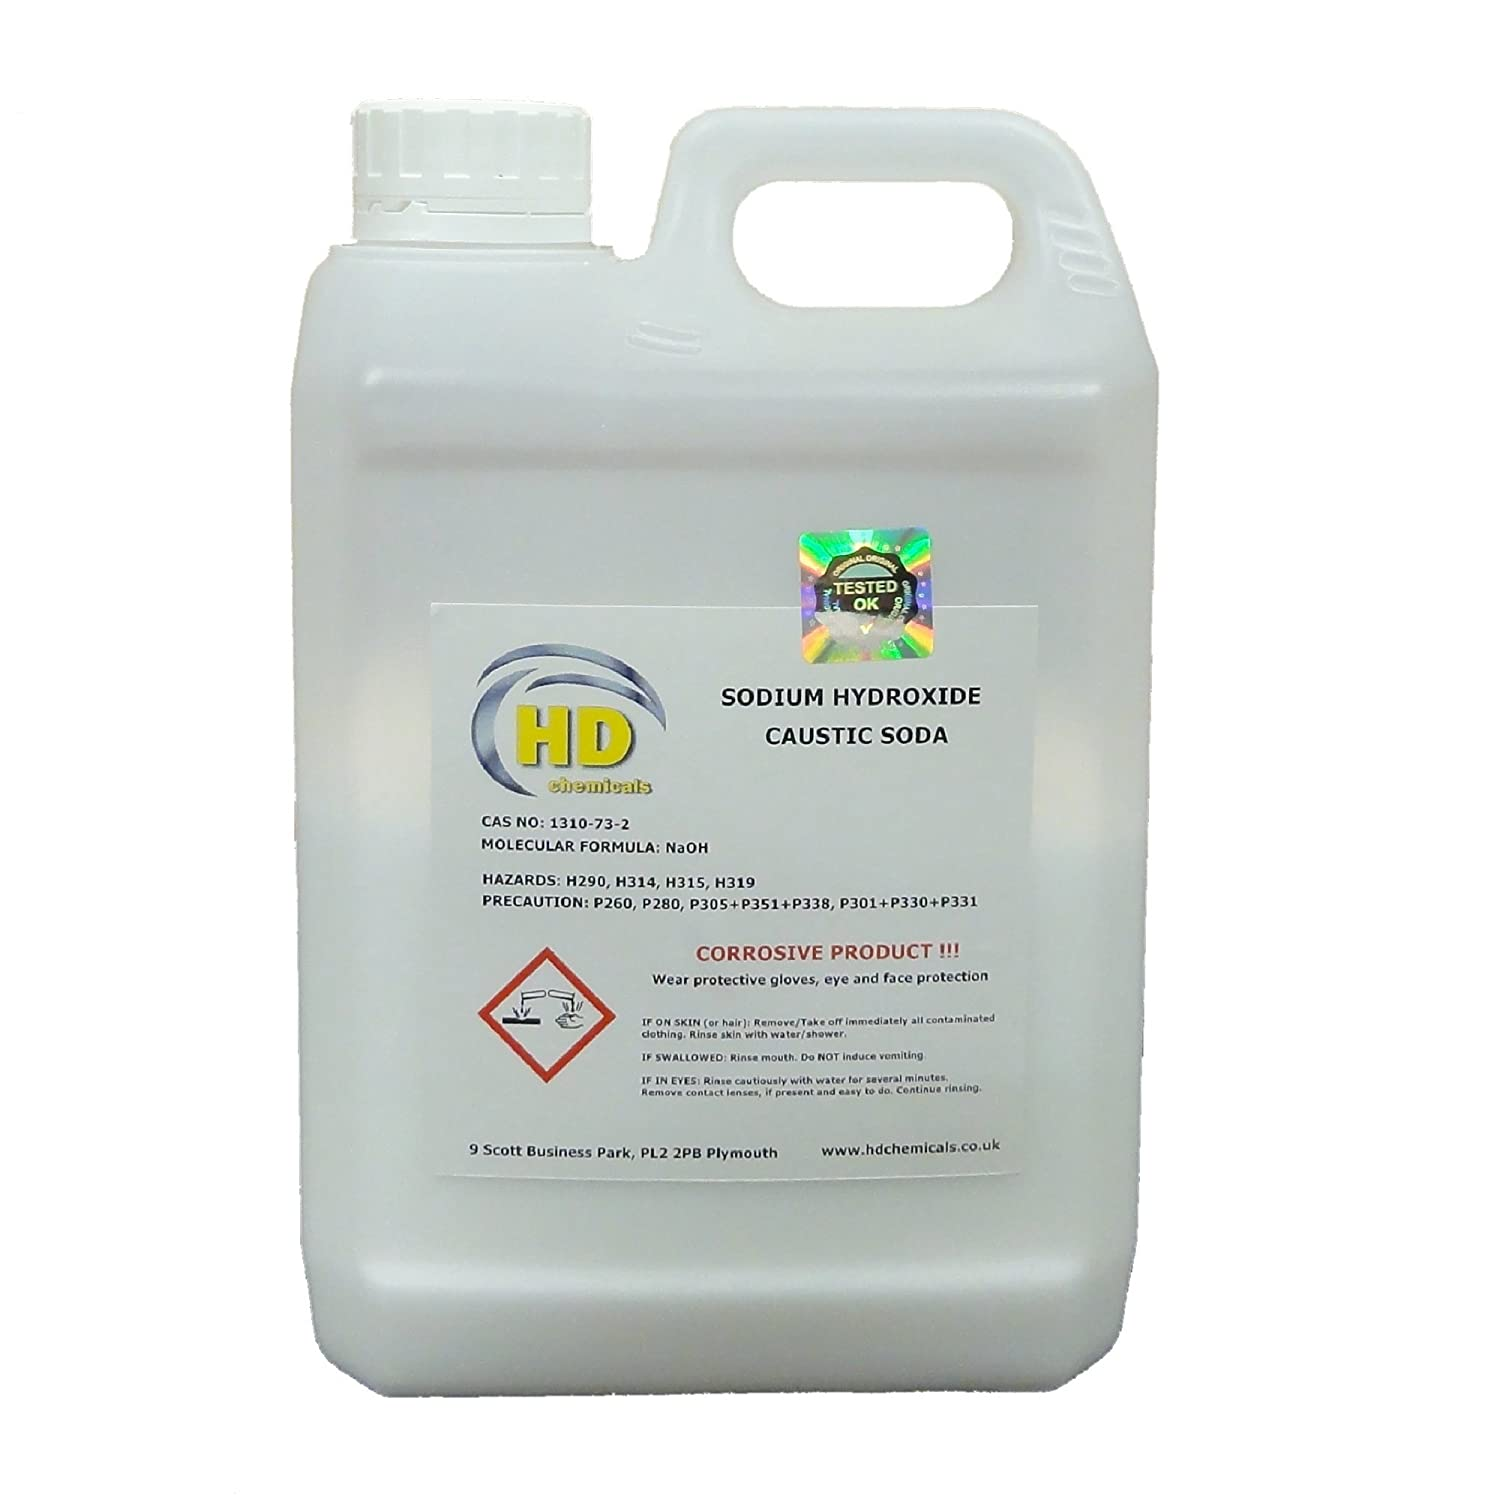 2.5kg Caustic Soda / Sodium Hydroxide, 99% Grade Micropearls, FREE NEXT DAY COURIER - UK MAINLAND ONLY HD Chemicals